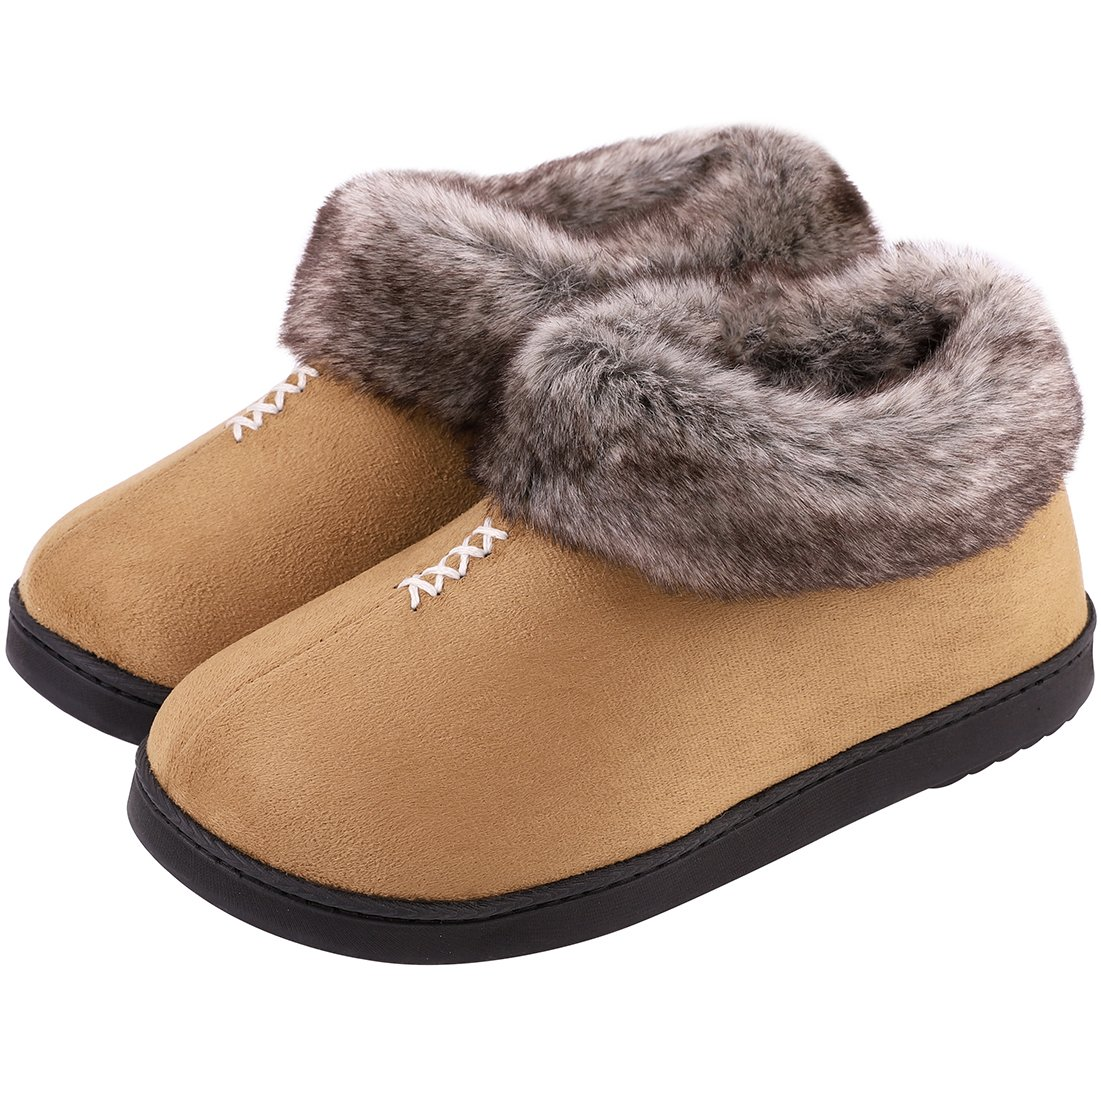 Women's Cozy Memory Foam Slippers Fluffy Micro Suede Faux Fur Fleece Lined House Shoes with Non Skid Indoor Outdoor Sole (Medium / 8 B(M) US, Camel)